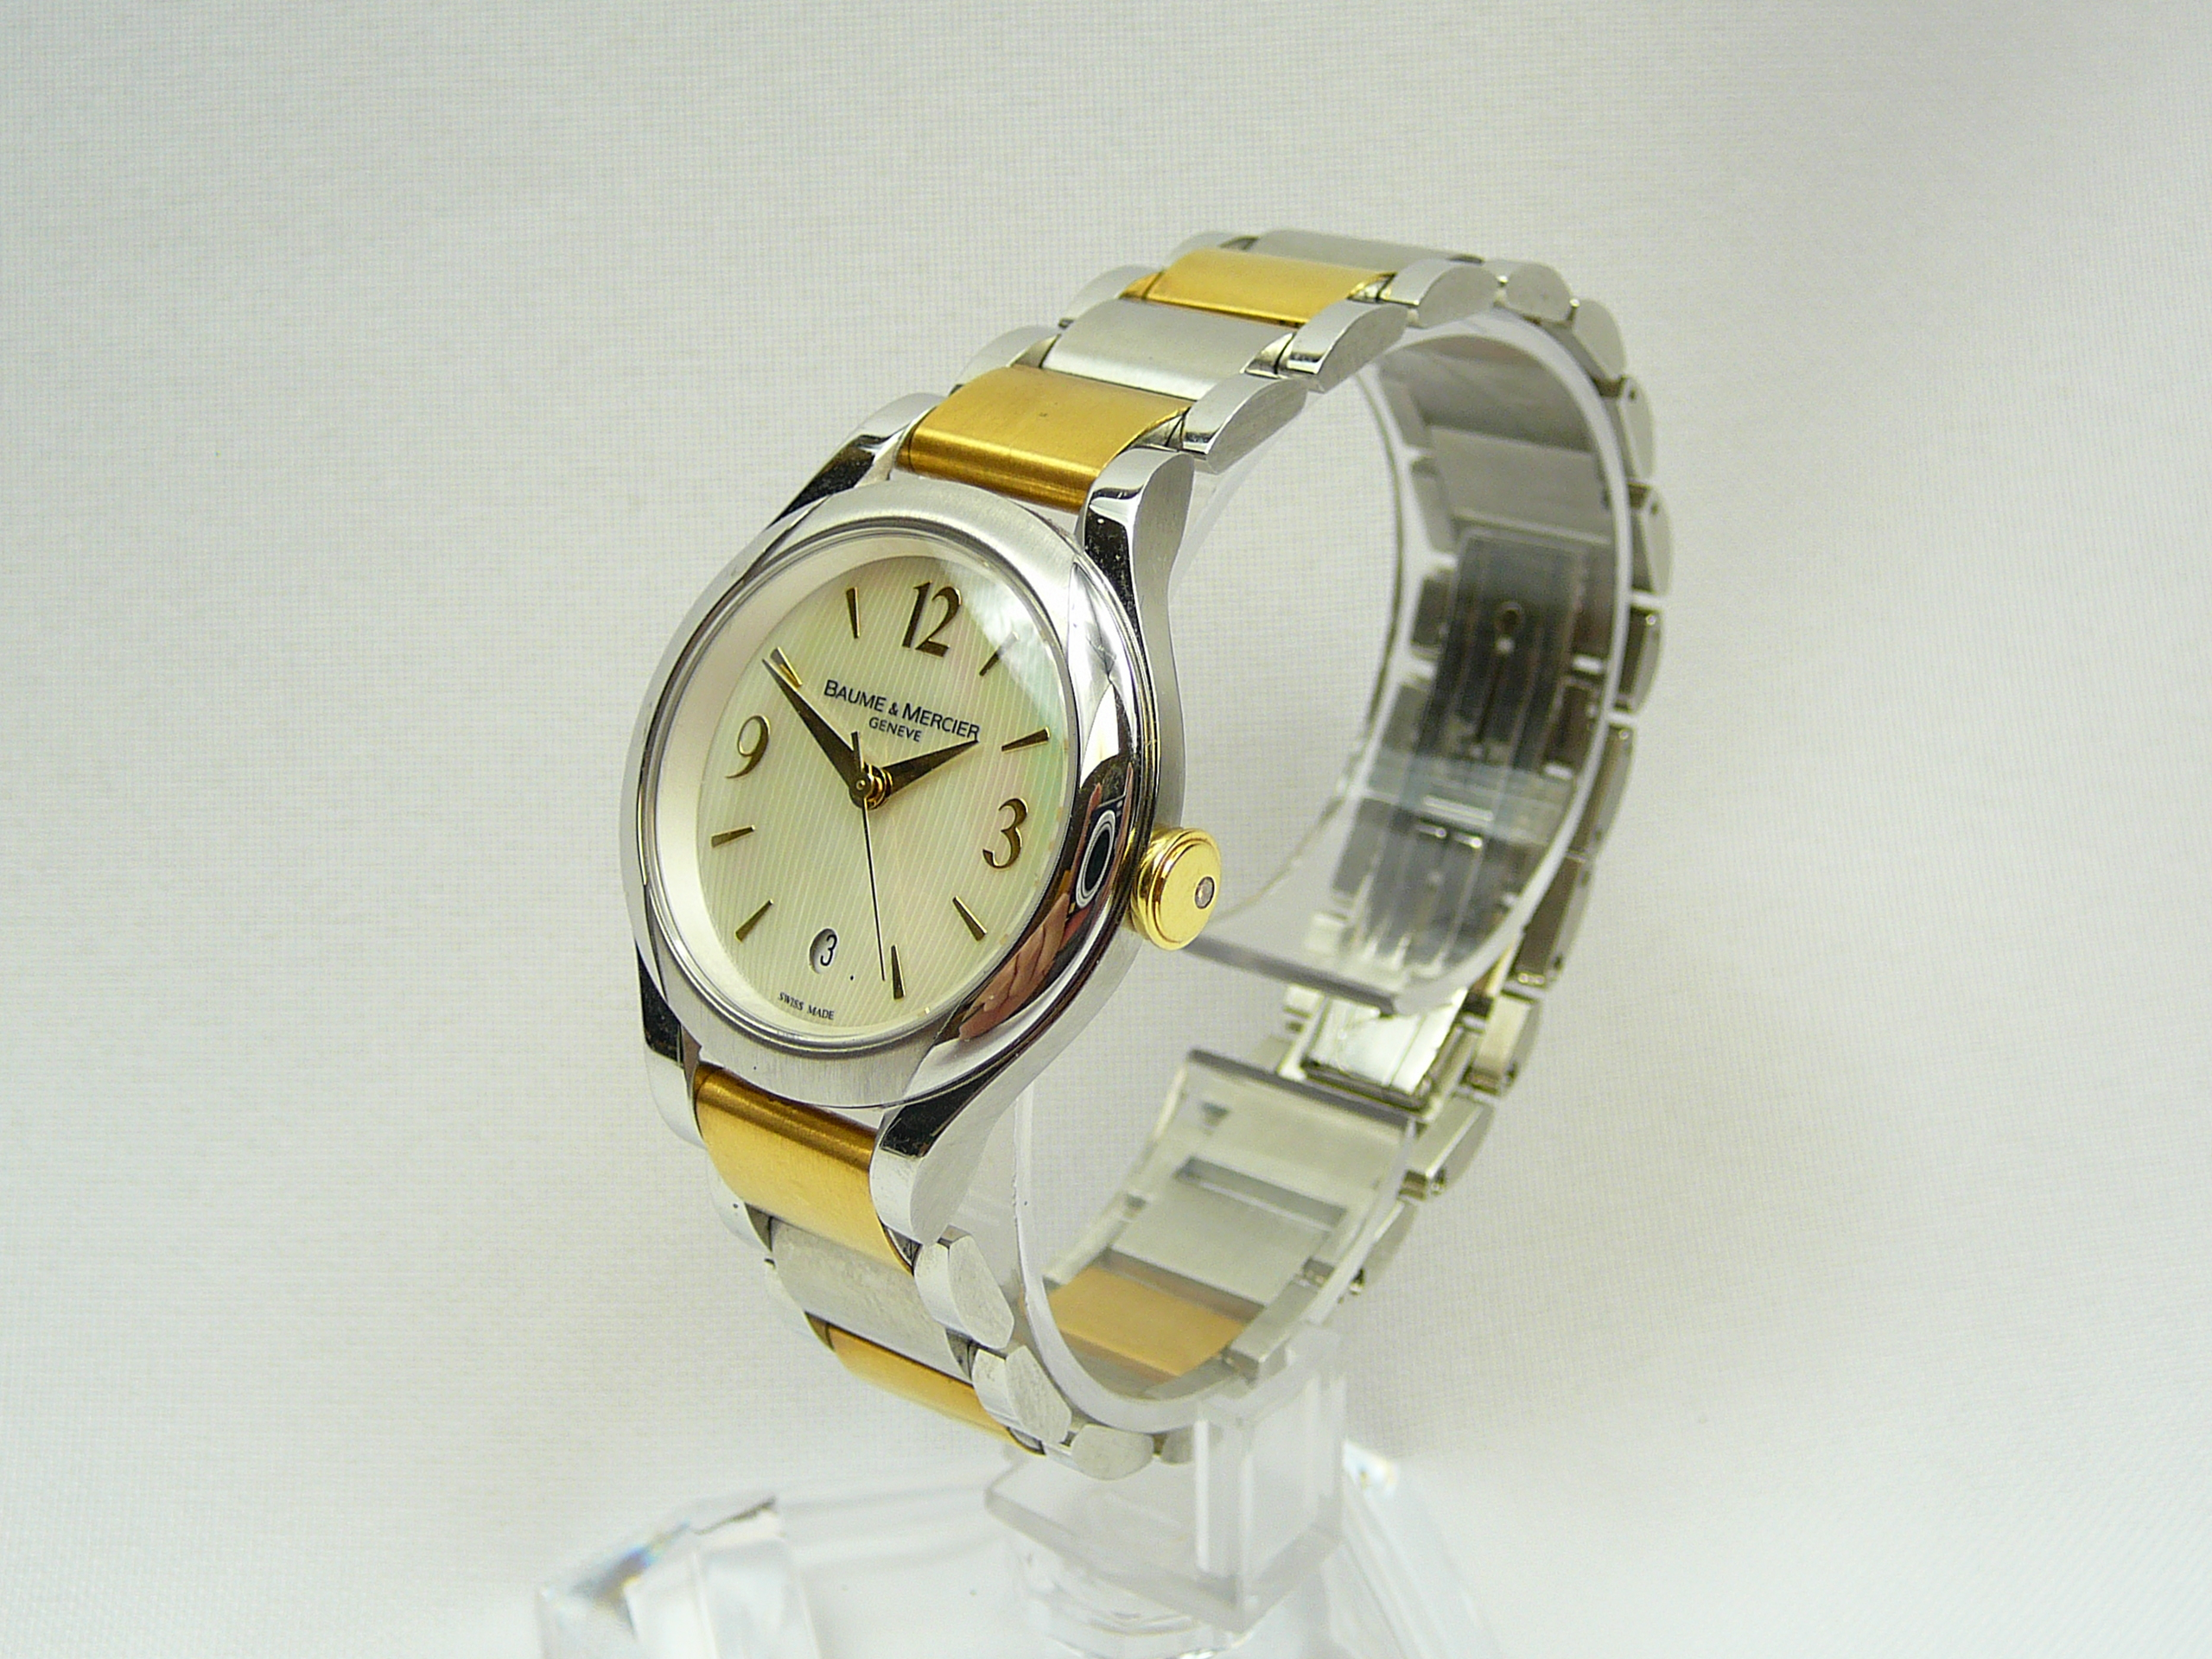 Ladies Baume & Mercier Wrist Watch